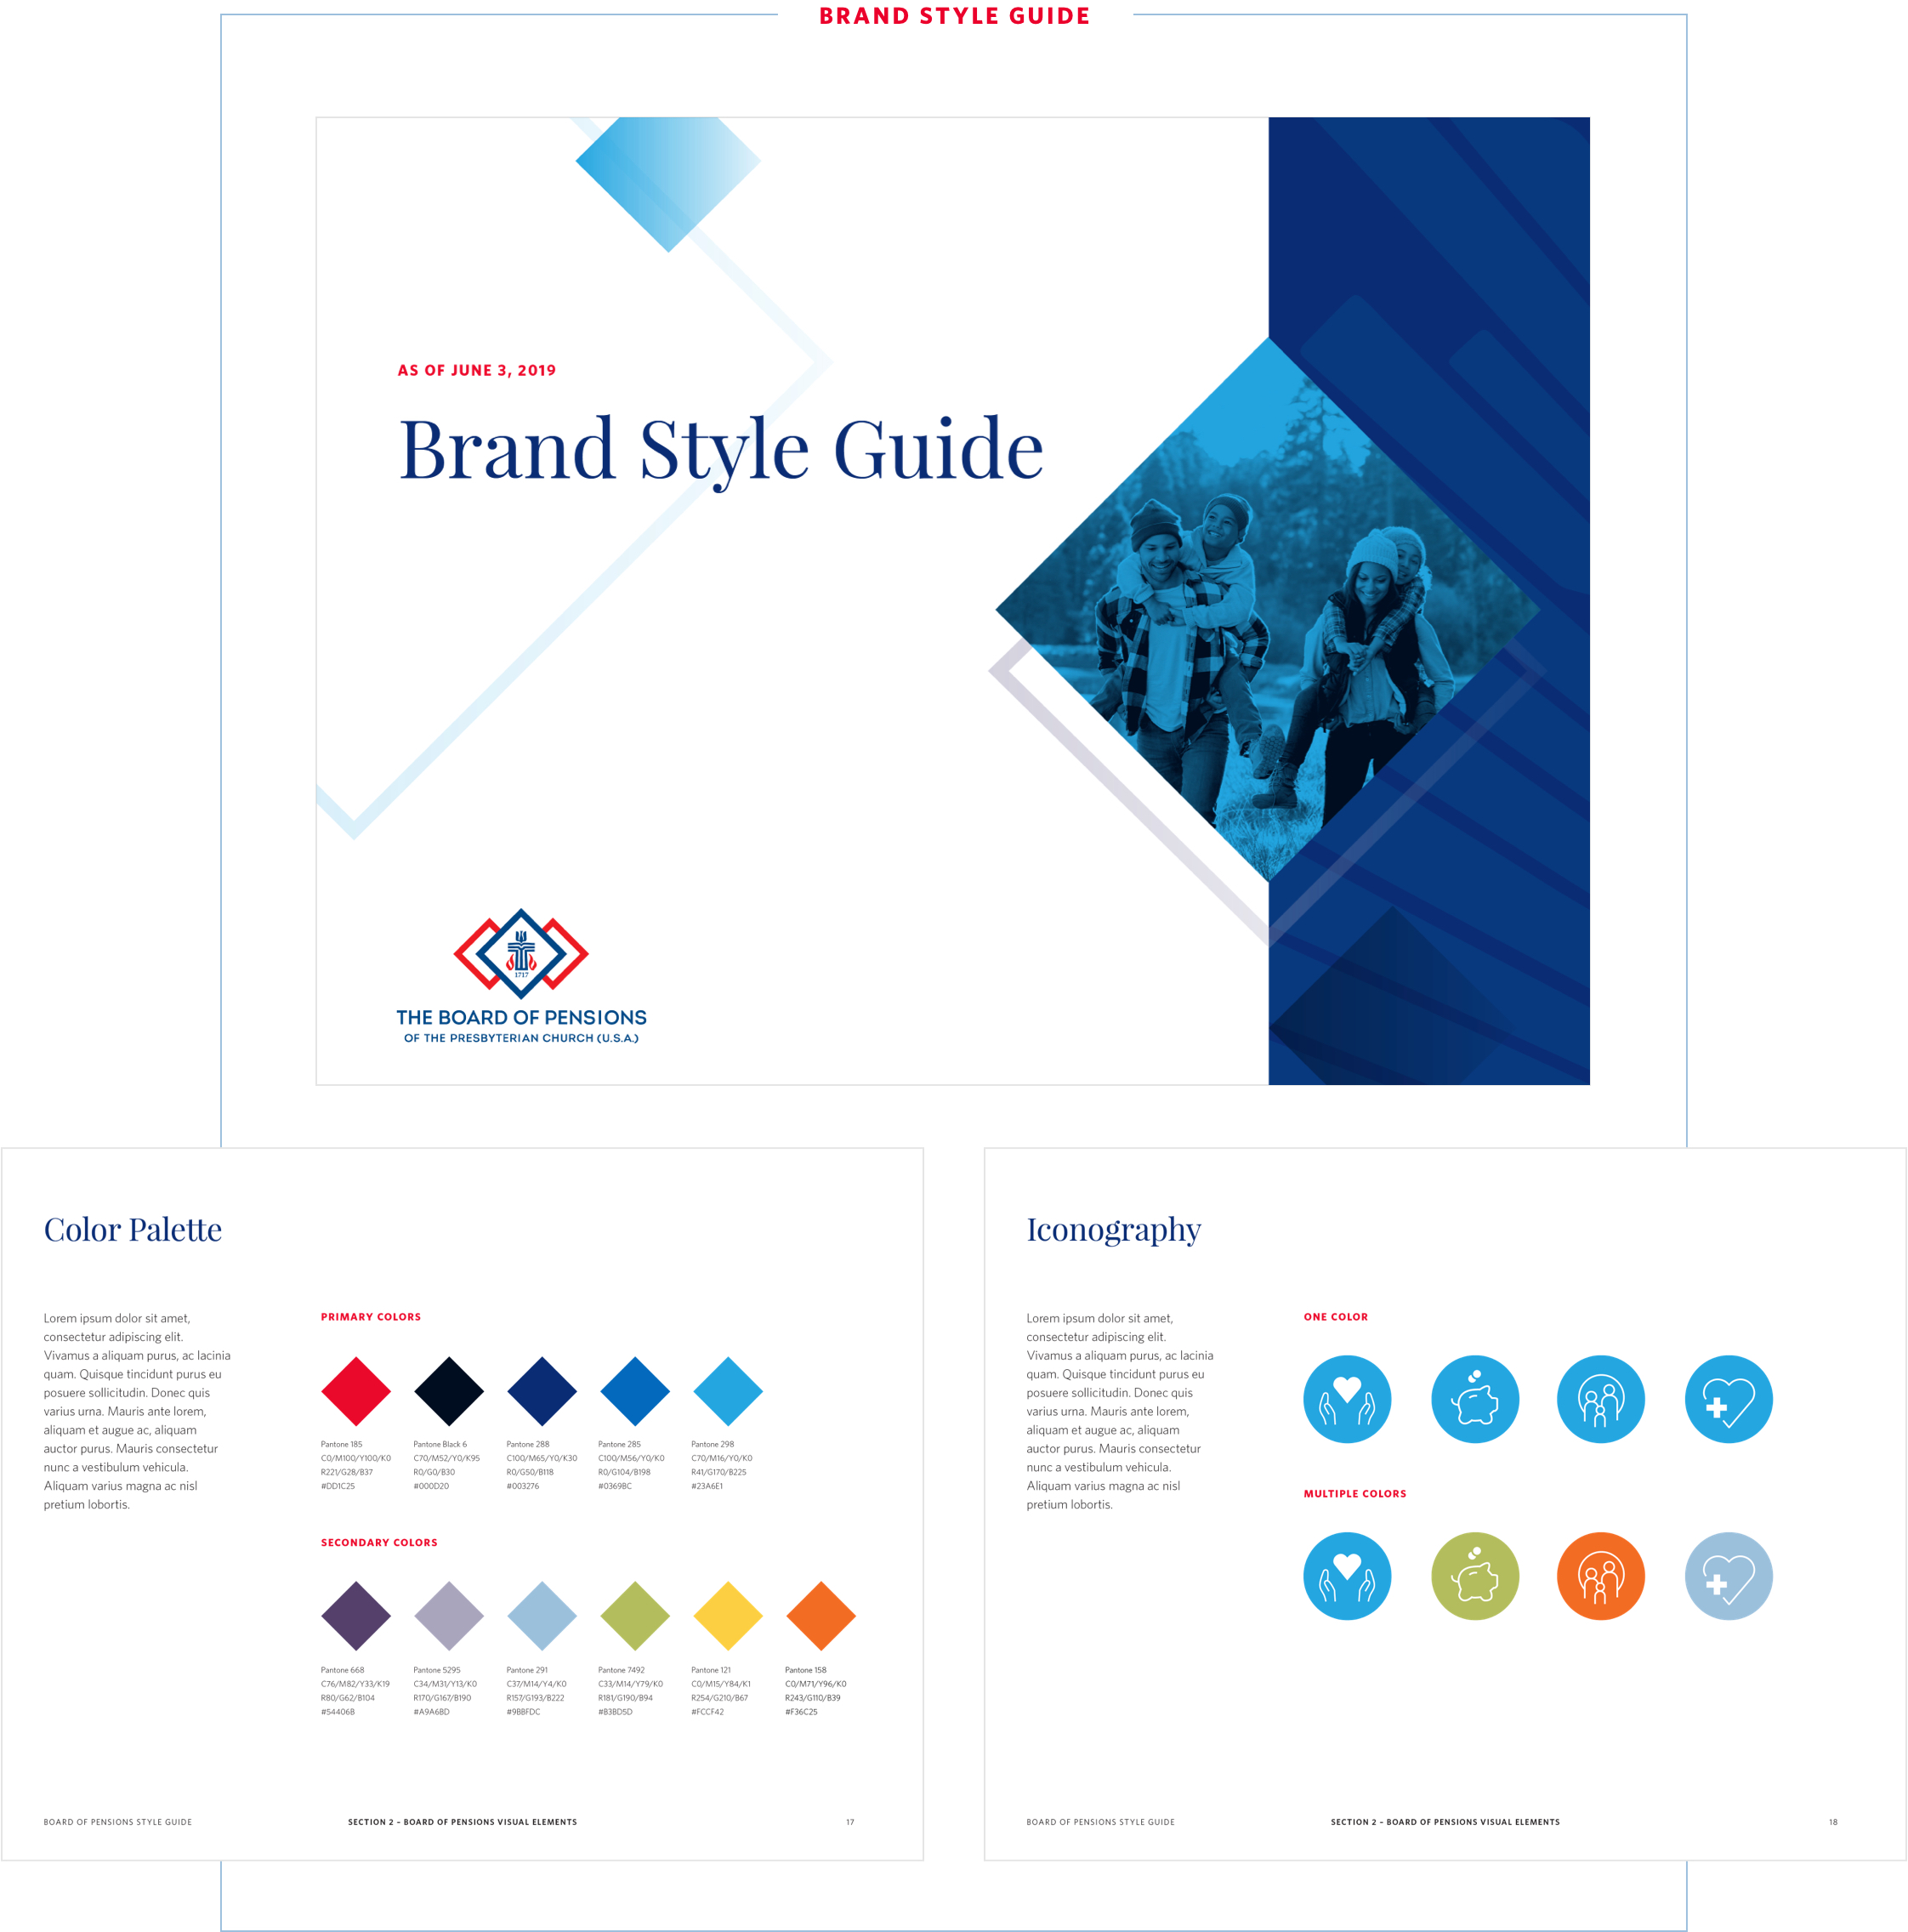 Style guide created by Eastern Standard for Board of Pensions